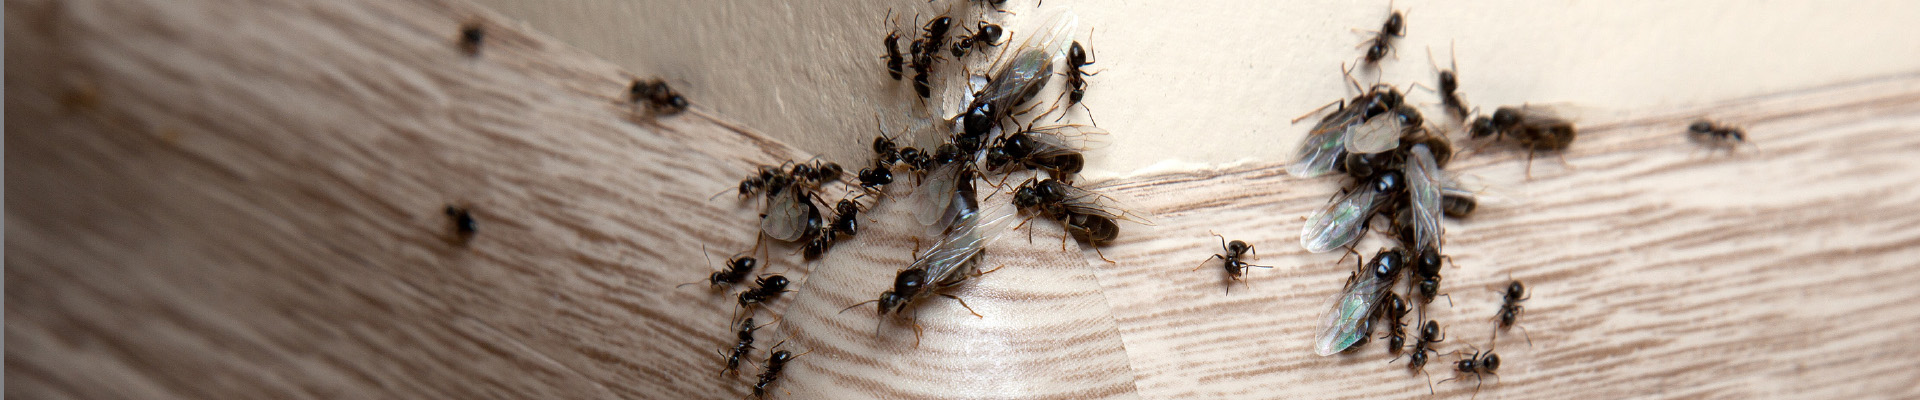 ant pest control and extermination